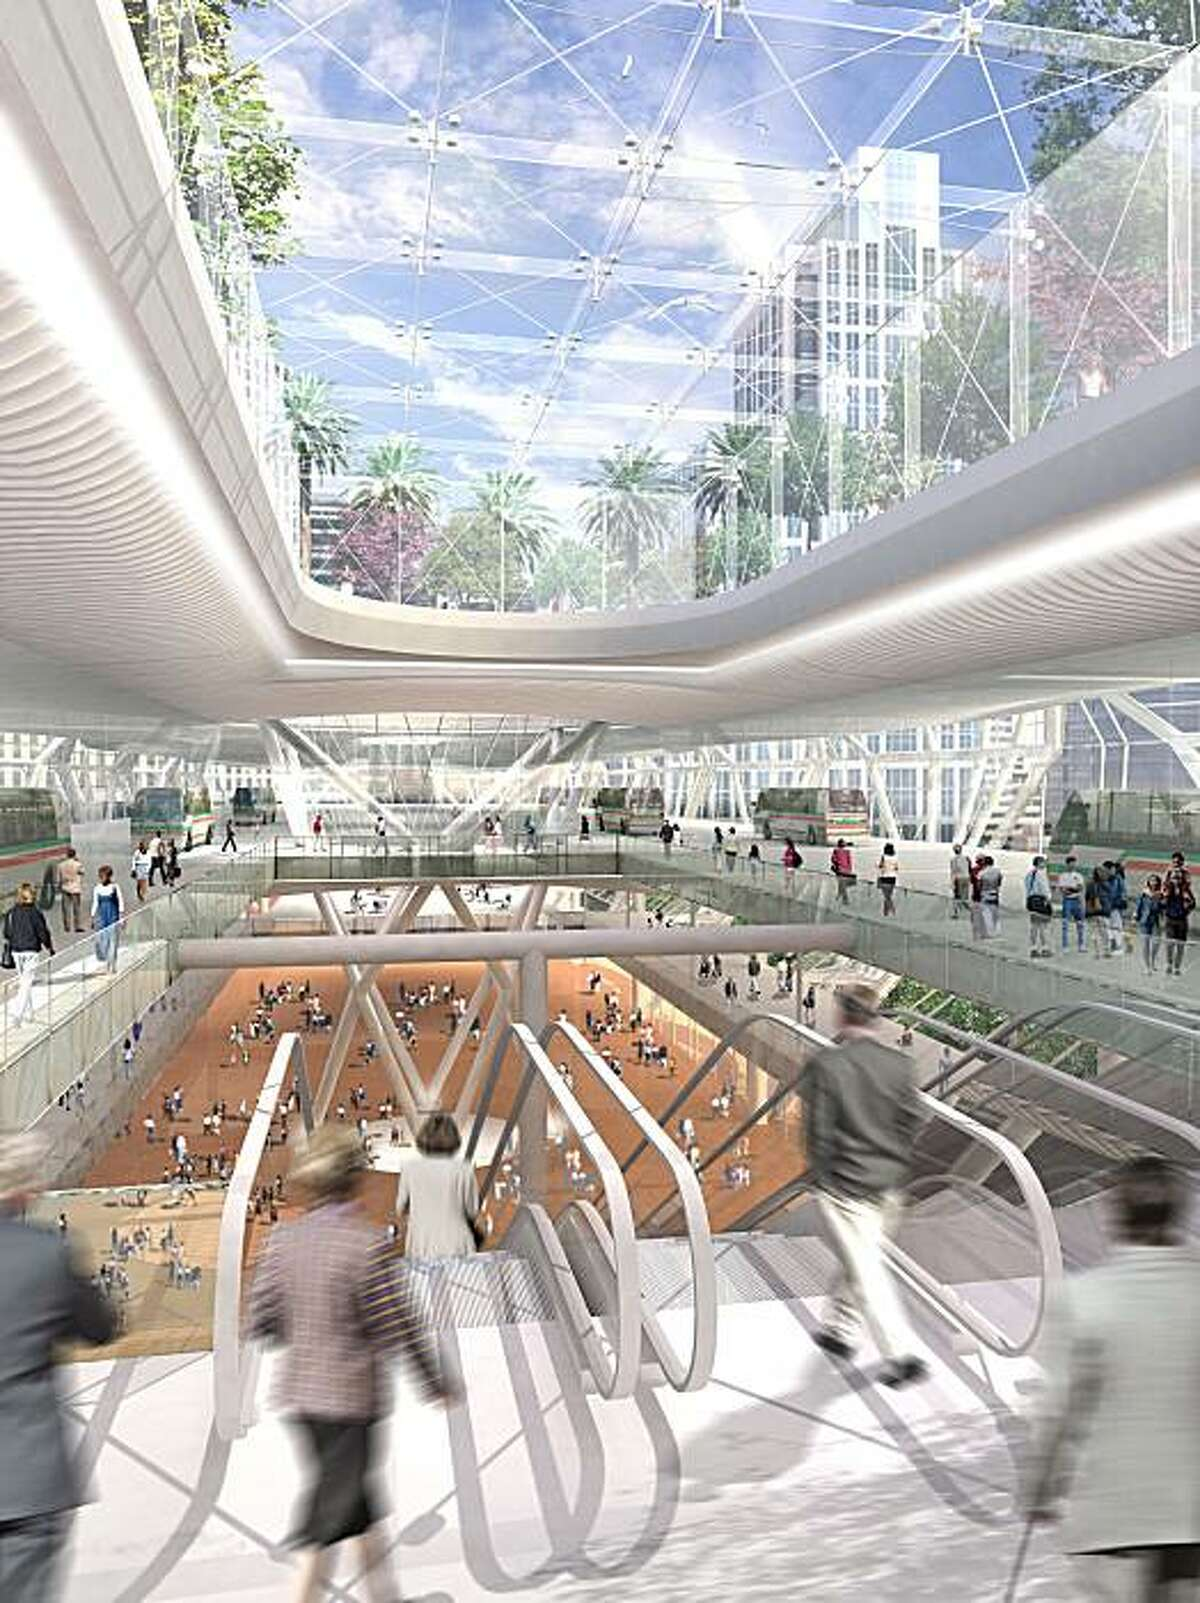 This is a proposed design concept for the Transbay Terminal. Bus level interior. Courtesy, Transbay Joint Powers Authority and Pelli Clarke Pelli Architects and WRNS Studio and Hines.